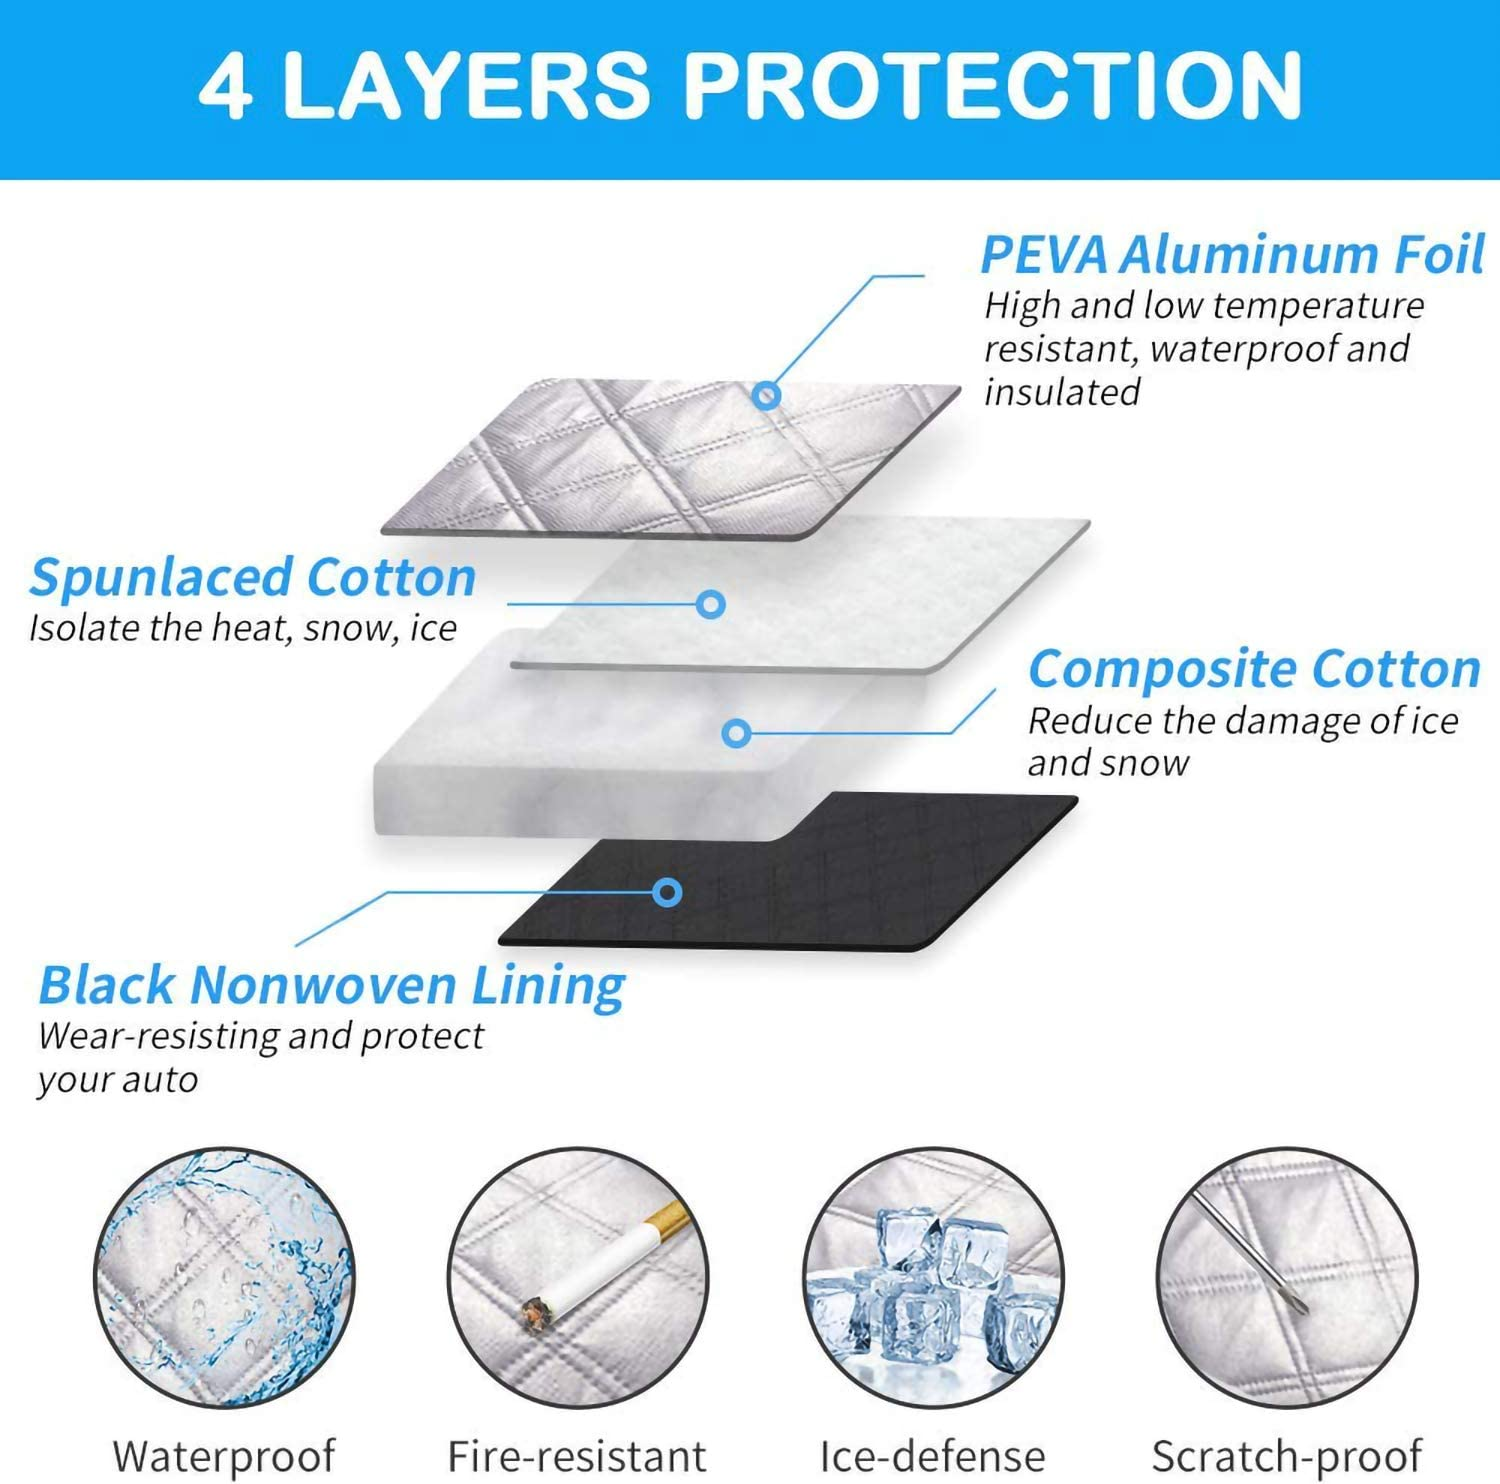 SANXIA Windshield Snow Cover with Side Mirror Covers,Car Windshield Snow Ice Cover Ice Defense No Scratches Highest Durability Waterproof Fabric for Most Vehicles Cars Truck Van and SUVS.